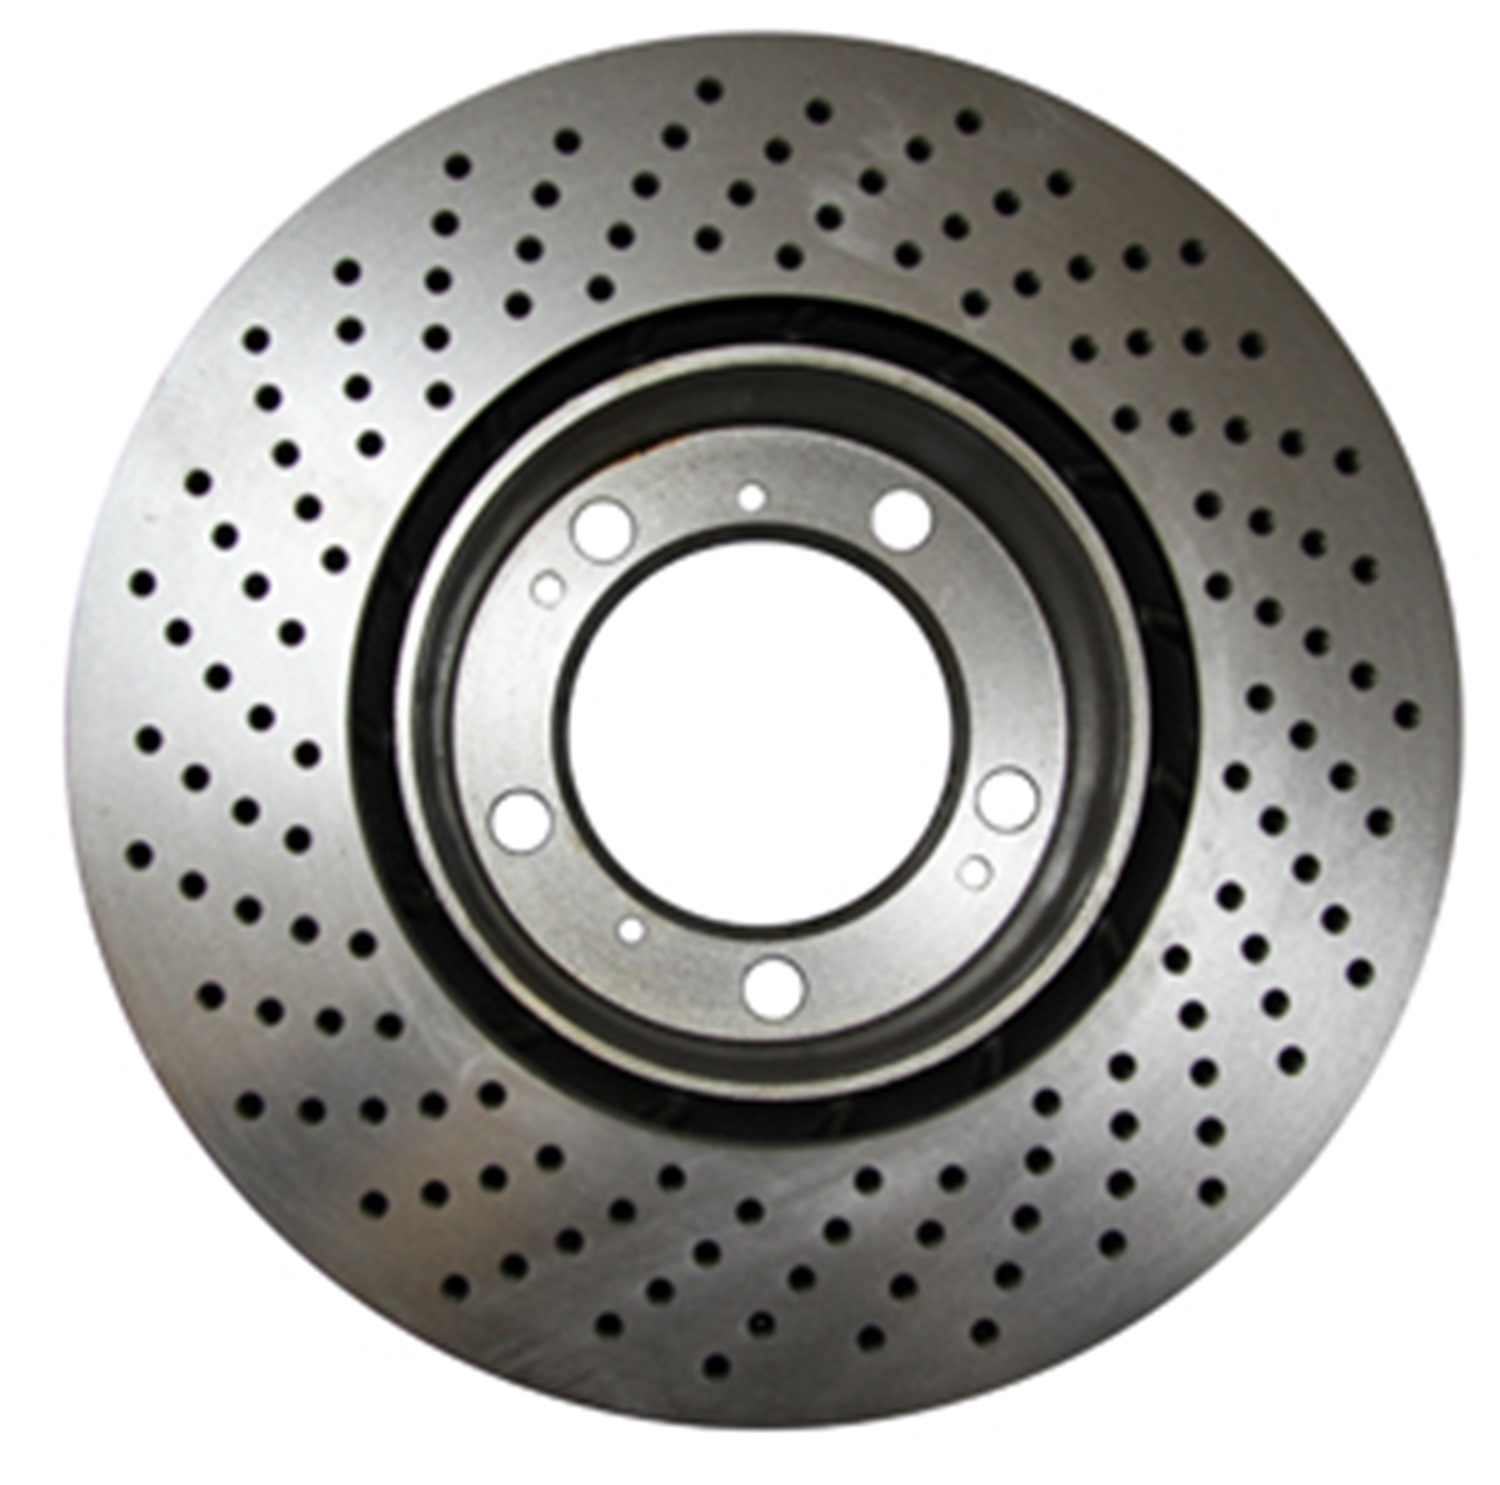 Cross Drilled Rotors >> Ebc Brakes Rk1588xd Cross Drilled Rotor Fits 03 06 Cl55 Amg S55 Amg